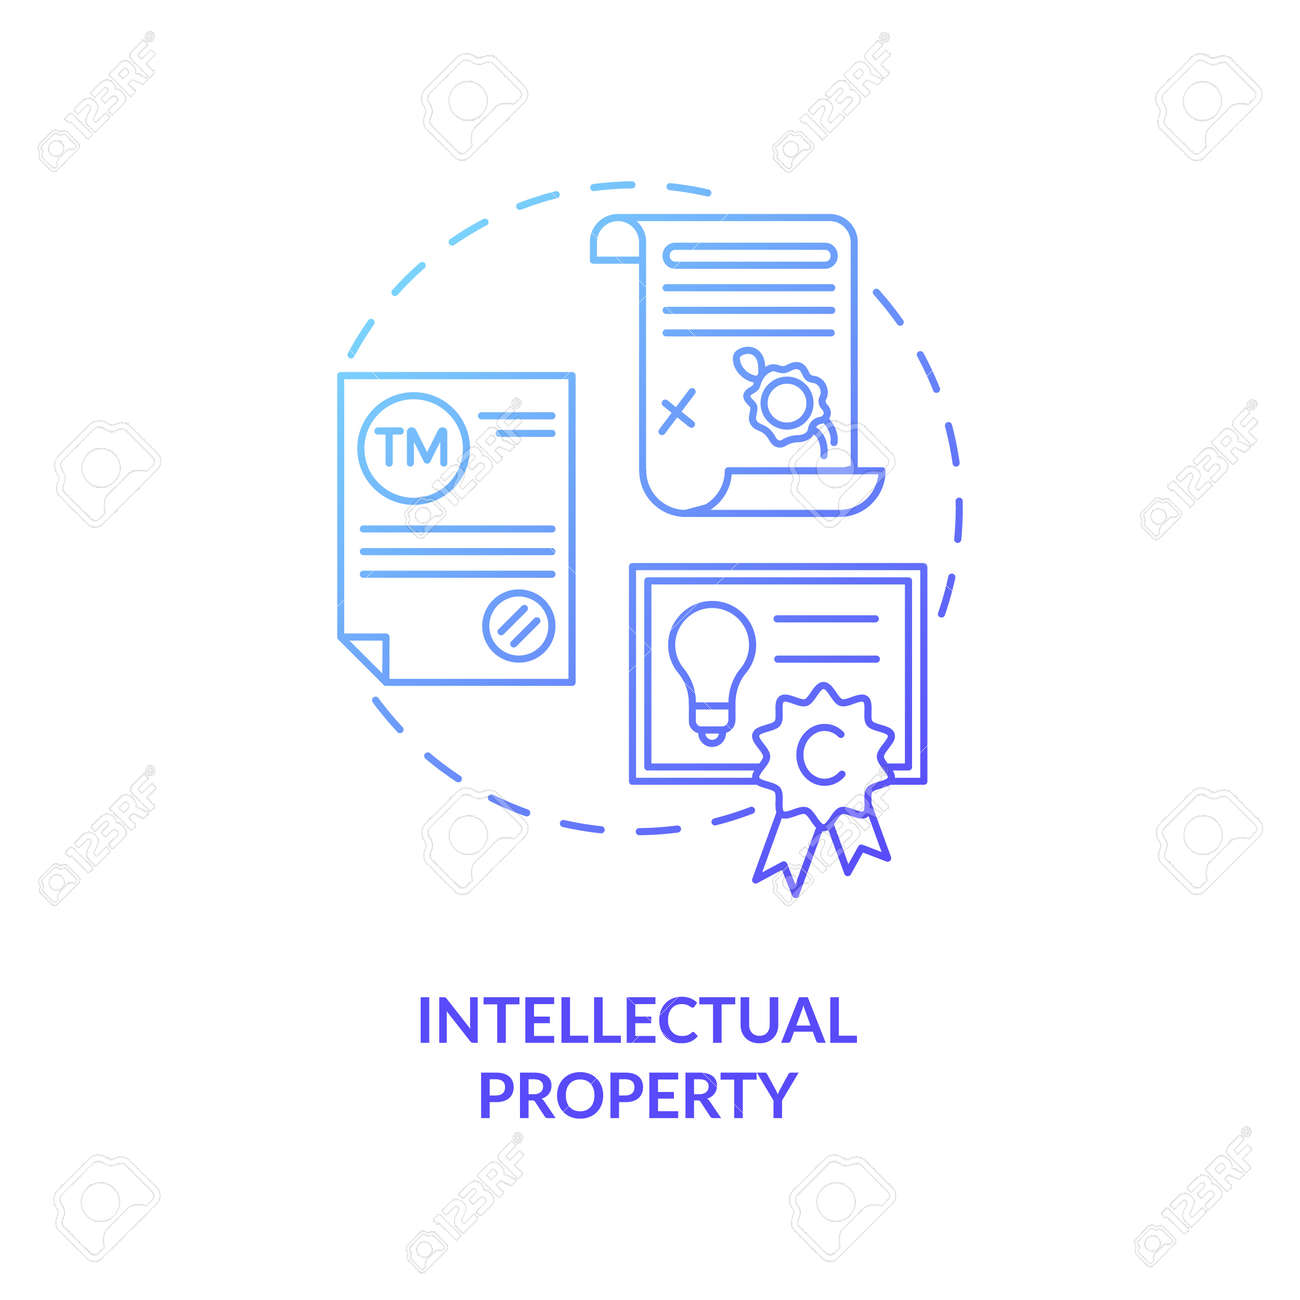 Intellectual property concept icon. Intangible asset idea thin line illustration. Mental-work products. Literary and artistic works. Copyrights, trademarks. Vector isolated outline RGB color drawing - 161725089